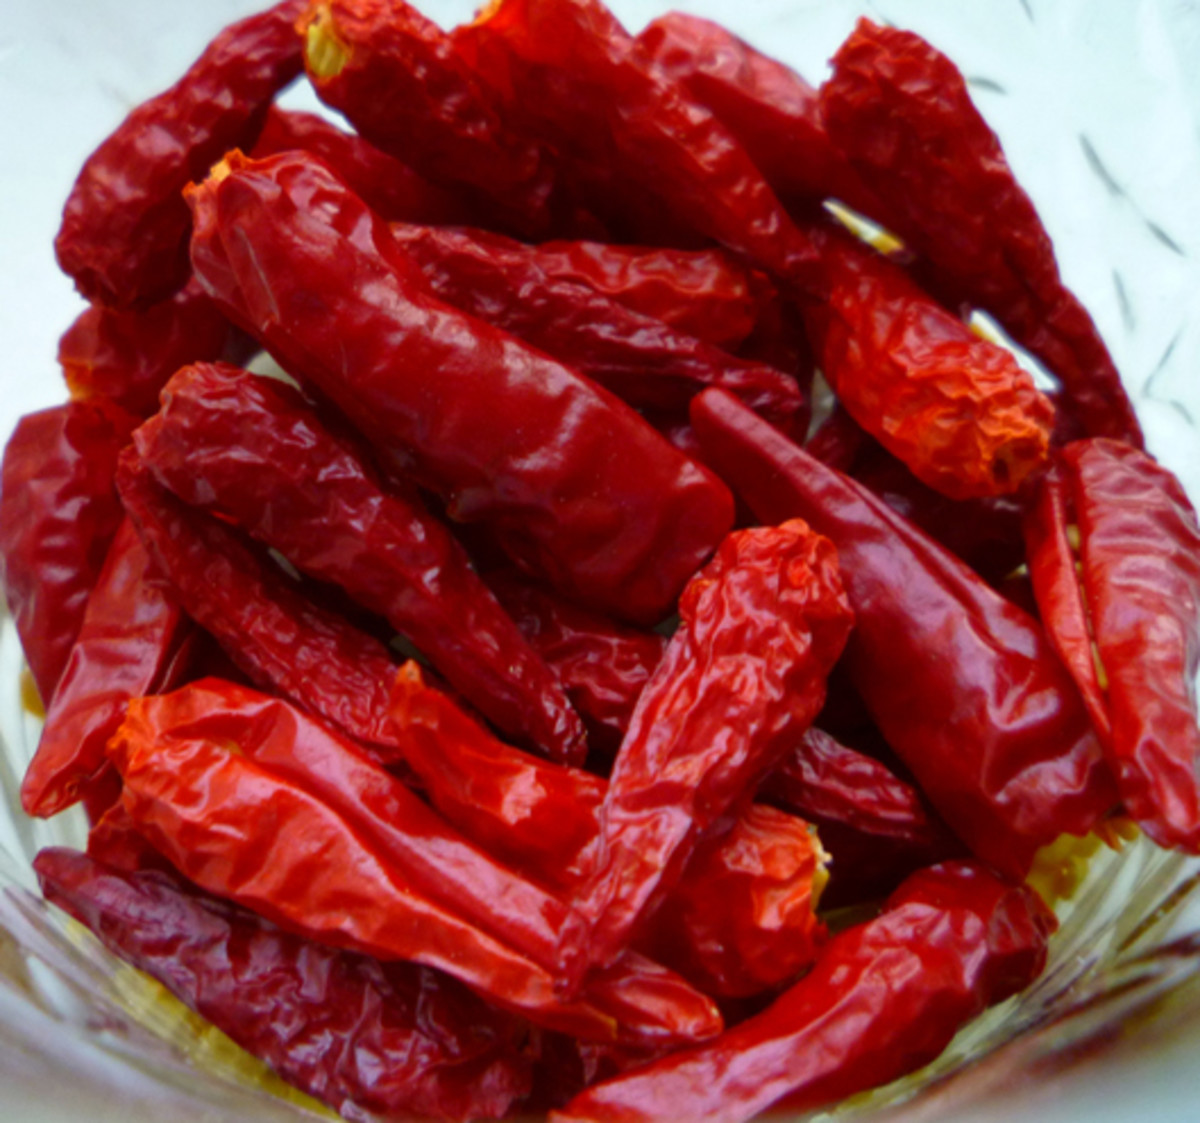 Dried pequin peppers. Containing a bit of heat, these dried peppers have a superb smoky flavor that pairs well with many cuisines!